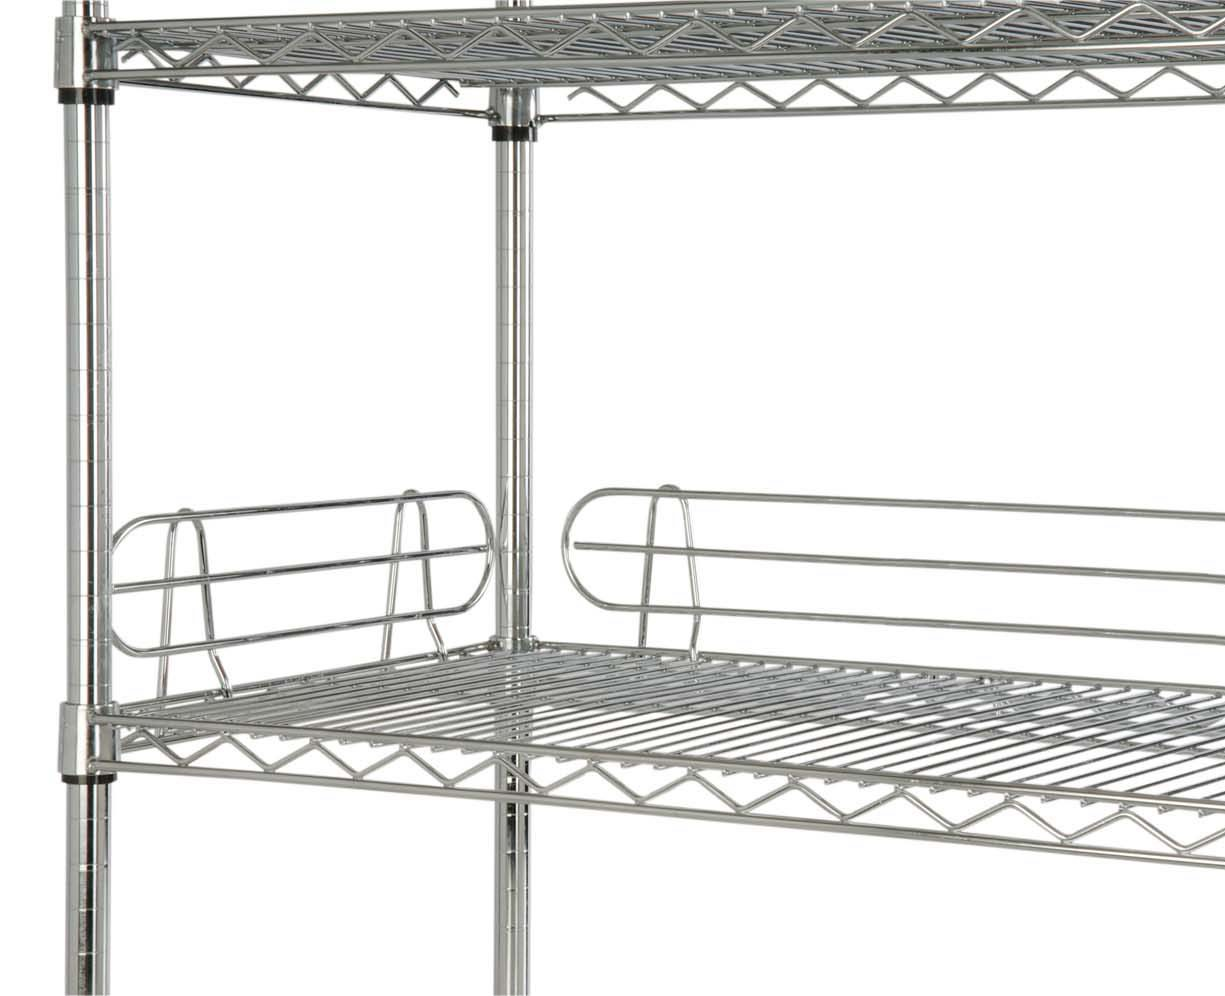 Focus Foodservice FL604C 60'' Shelf Ledge - 2 pcs